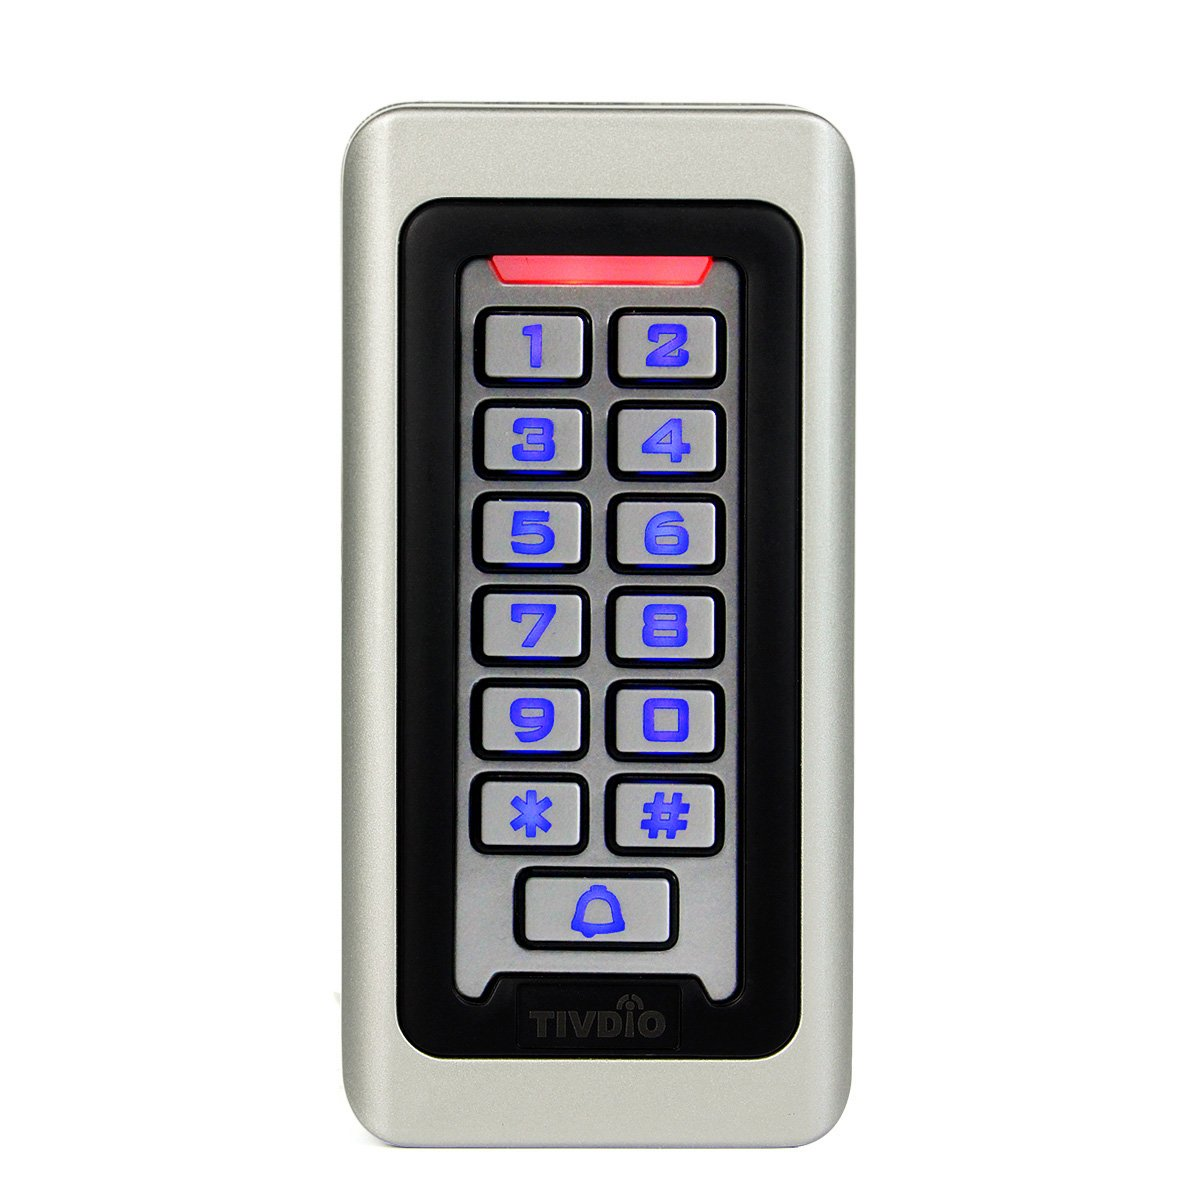 Amazon.com : TIVDIO Access Control Keypad Door Keypad Outdoor Waterproof  IP68 Metal Case RFID 125KHz Keypad Single Door Stand-alone with 2000 Users  for ...